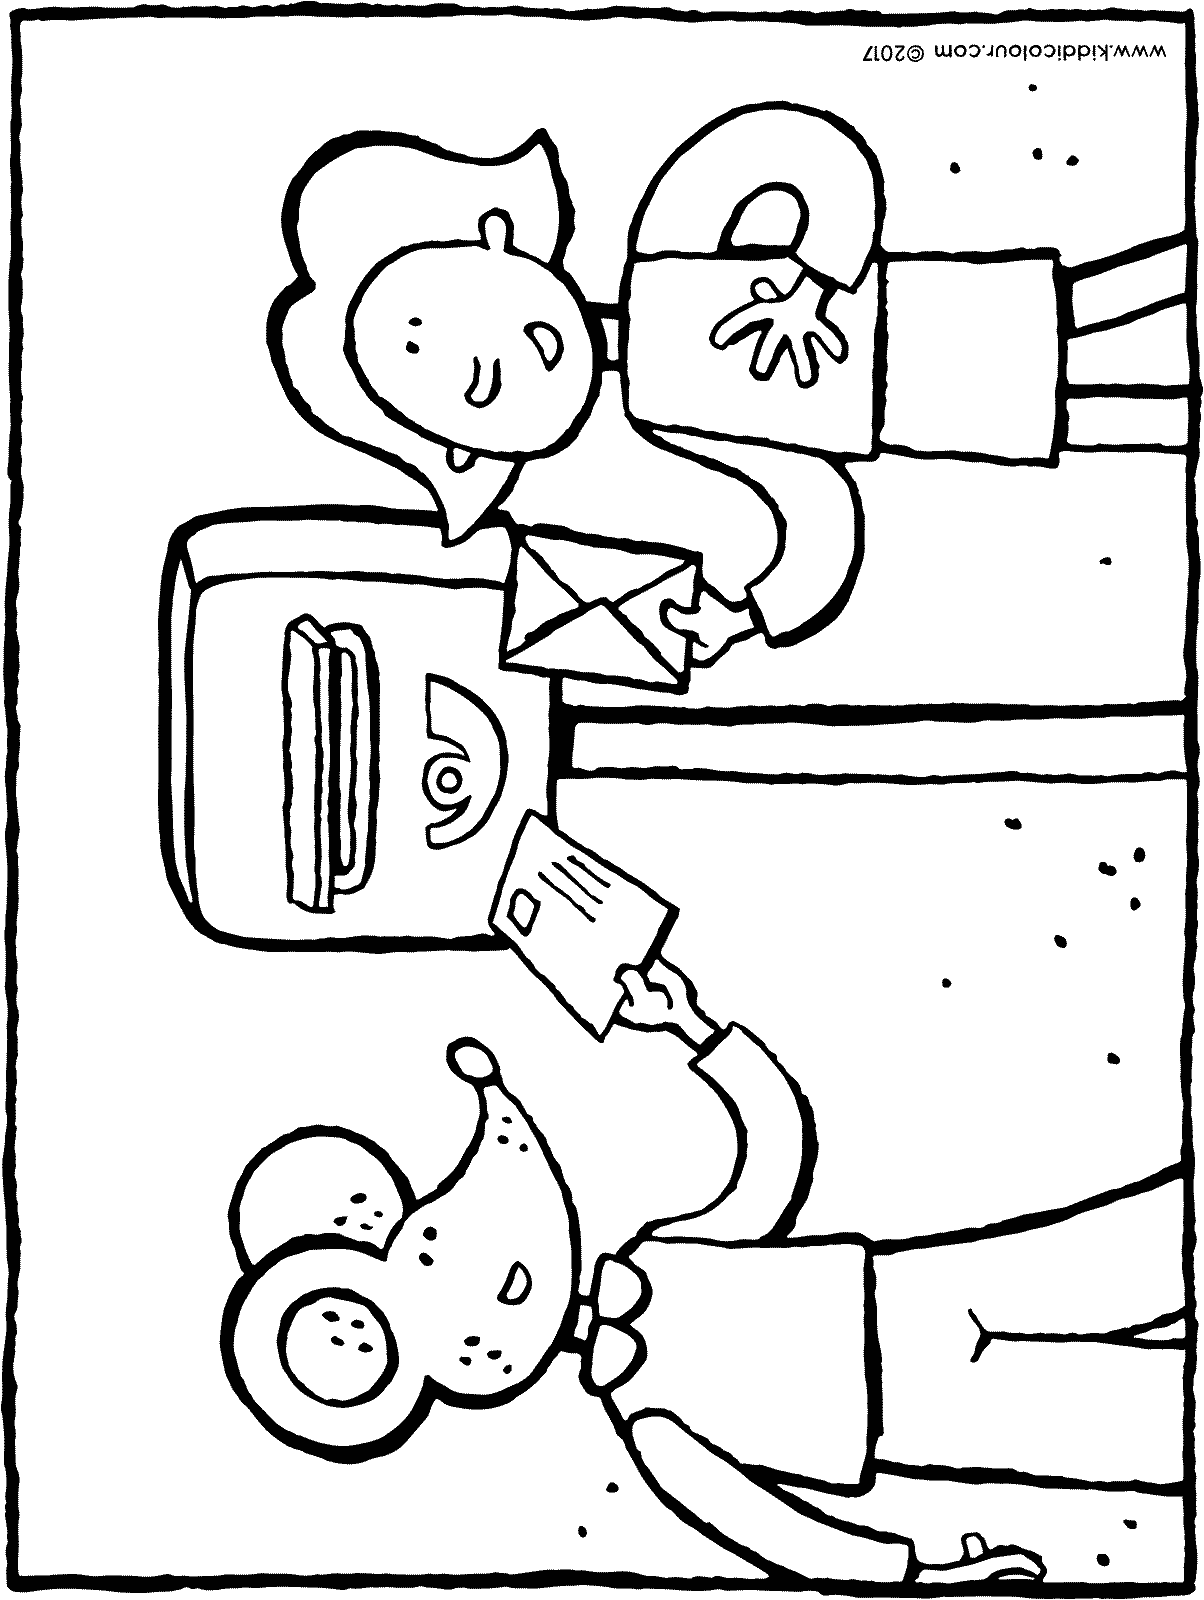 Emma and Thomas posting a letter colouring page page drawing picture 01H